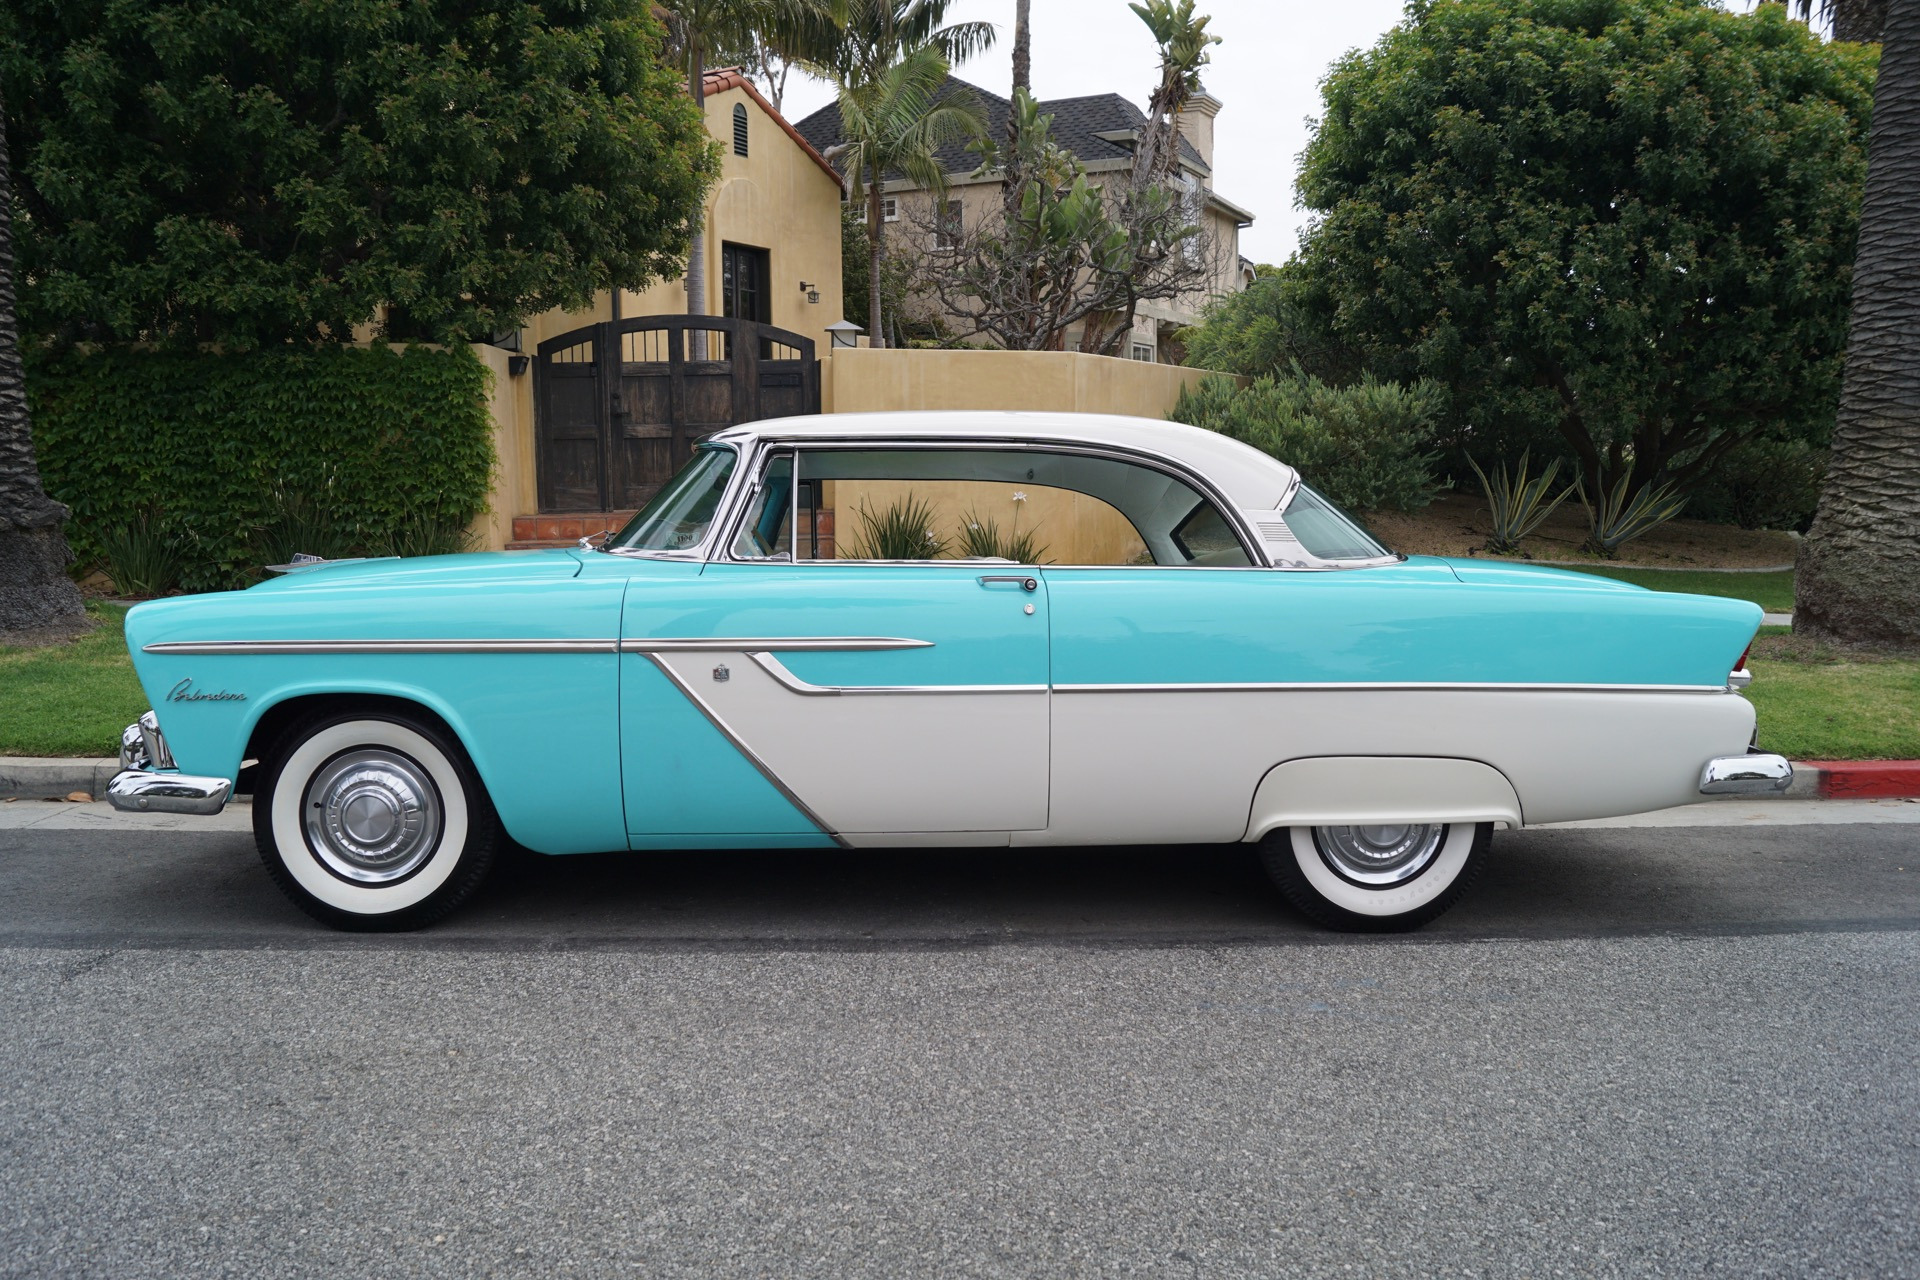 Longest lowest liveliest plymouth ever plymouth ad for 1955 plymouth belvedere 4 door sedan